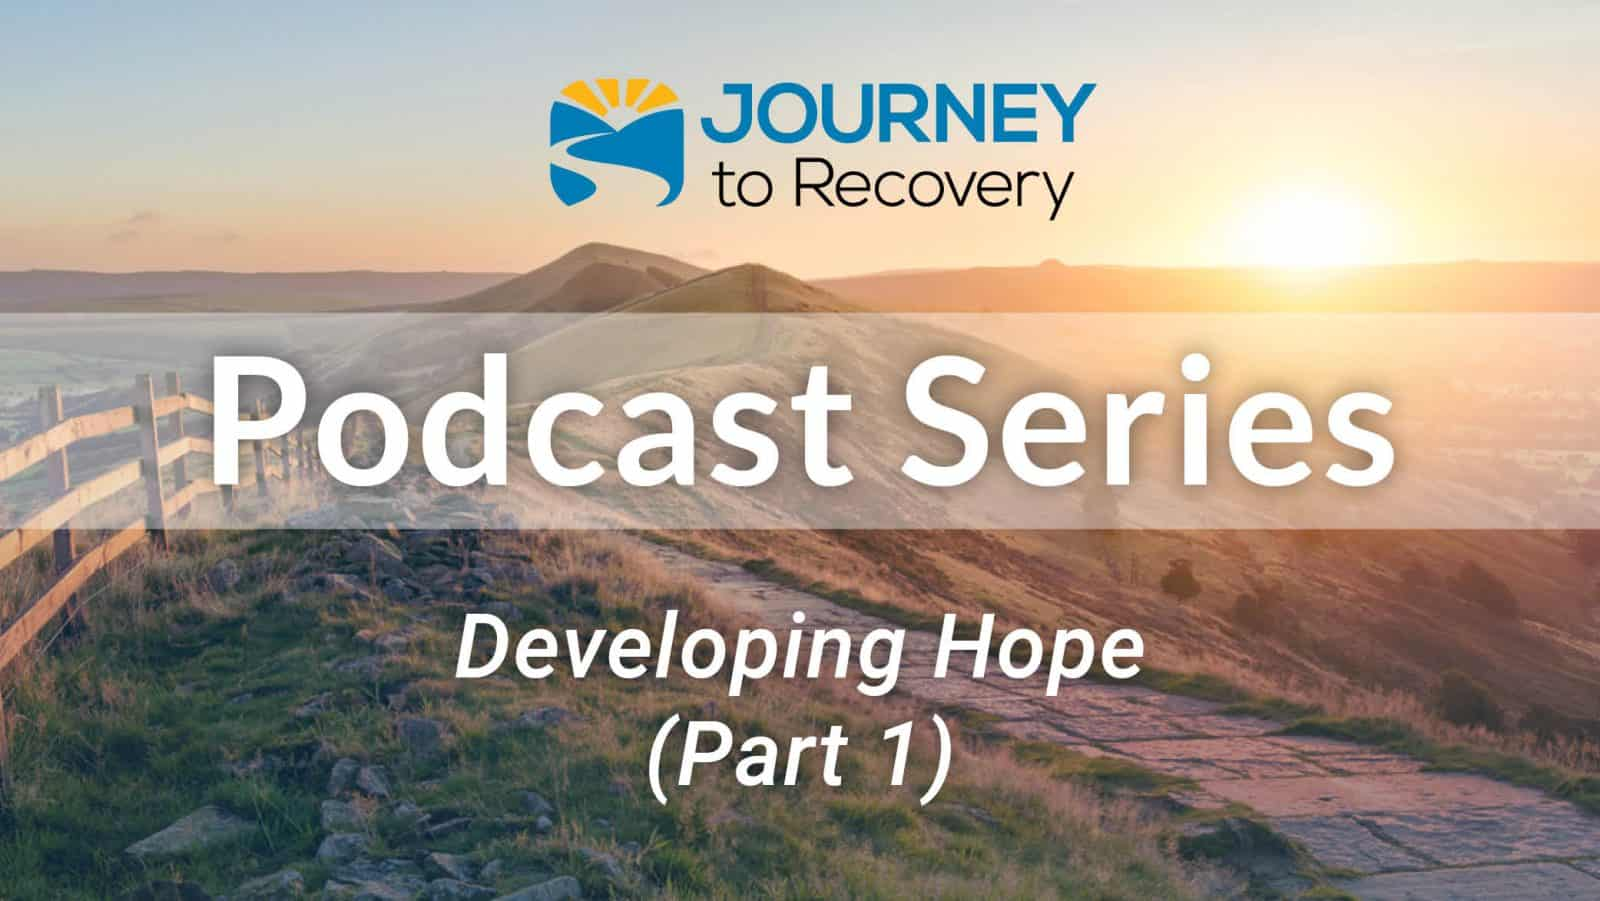 Developing Hope (Part 1)